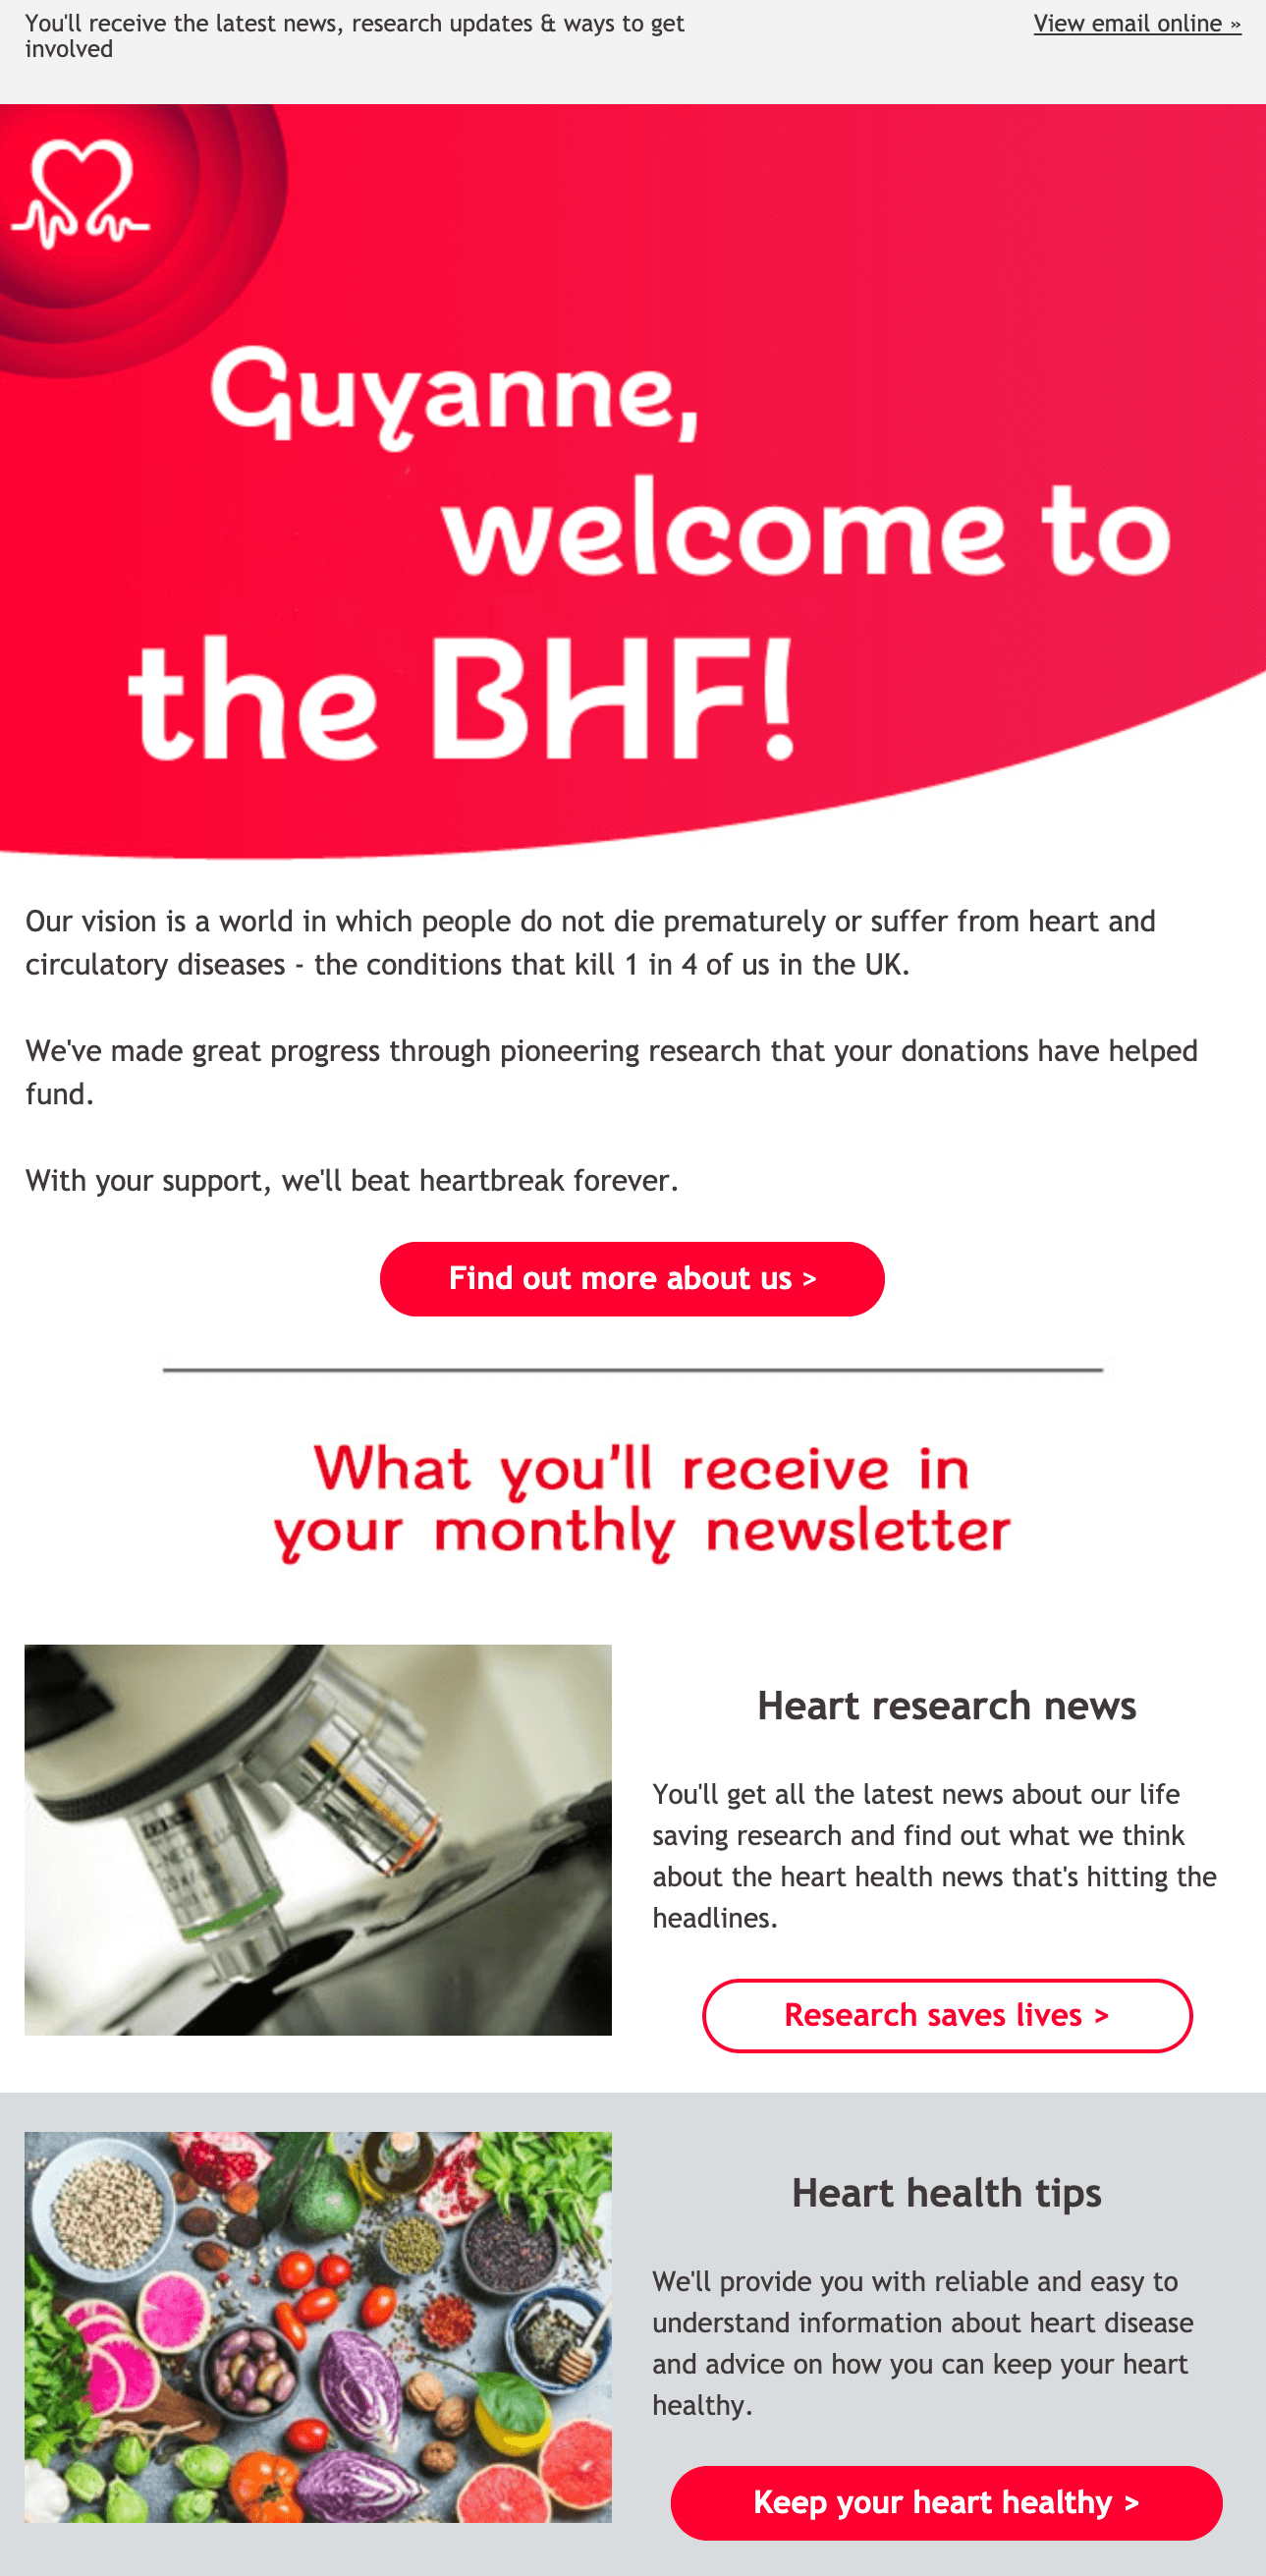 Image of the first half of the BHF's welcome email. It shows a large personalised welcome message and and a list of what readers will receive in their monthly email.